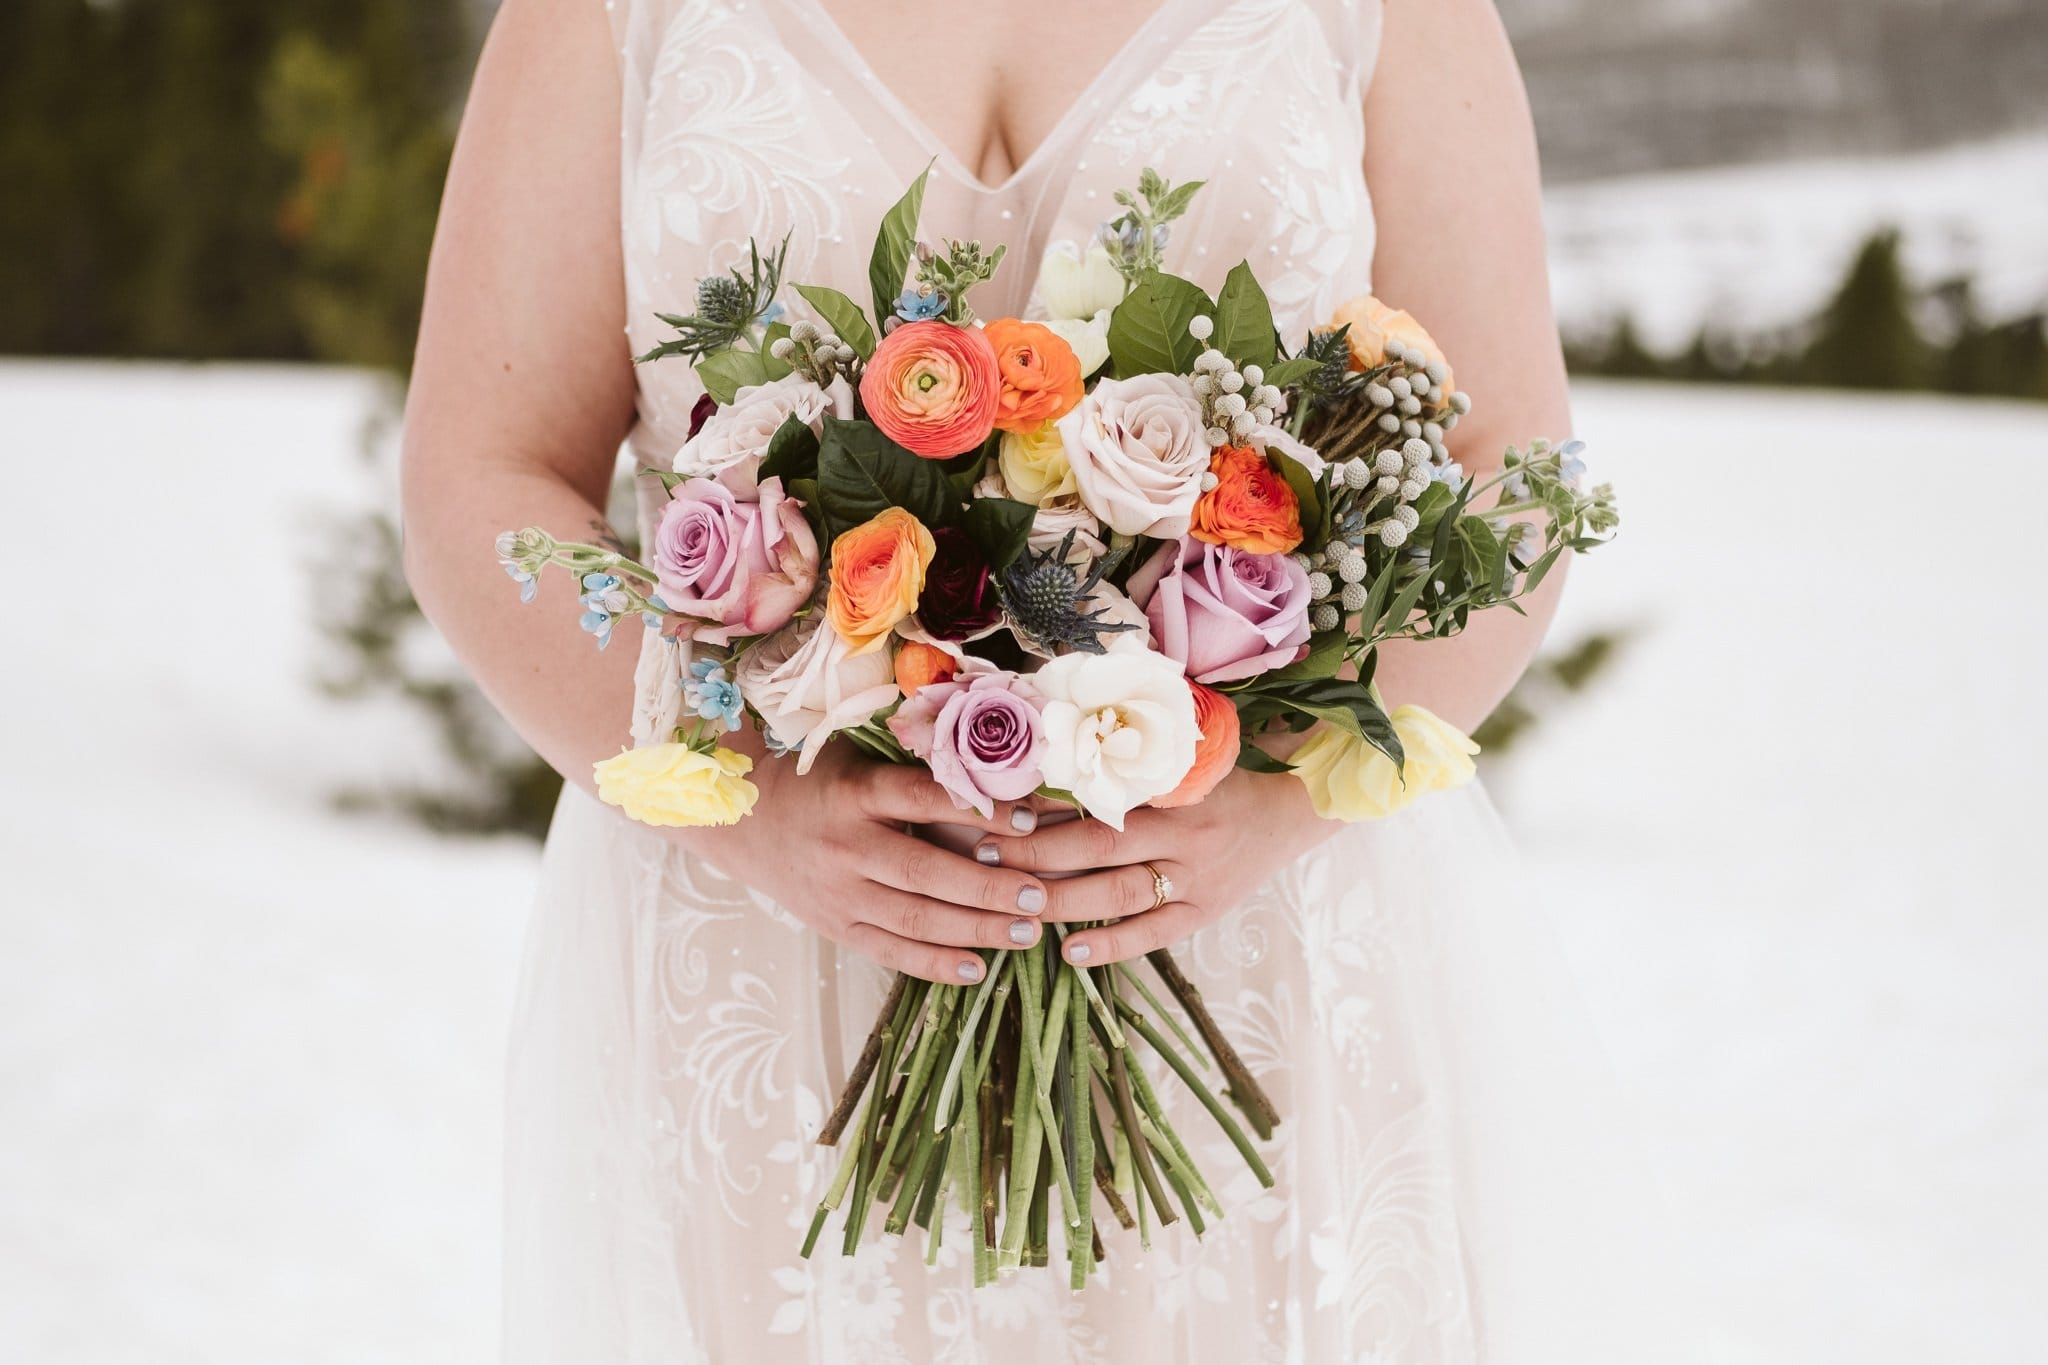 Spring colored wedding bouquet by From the Ground Up Flowers in Crested Butte